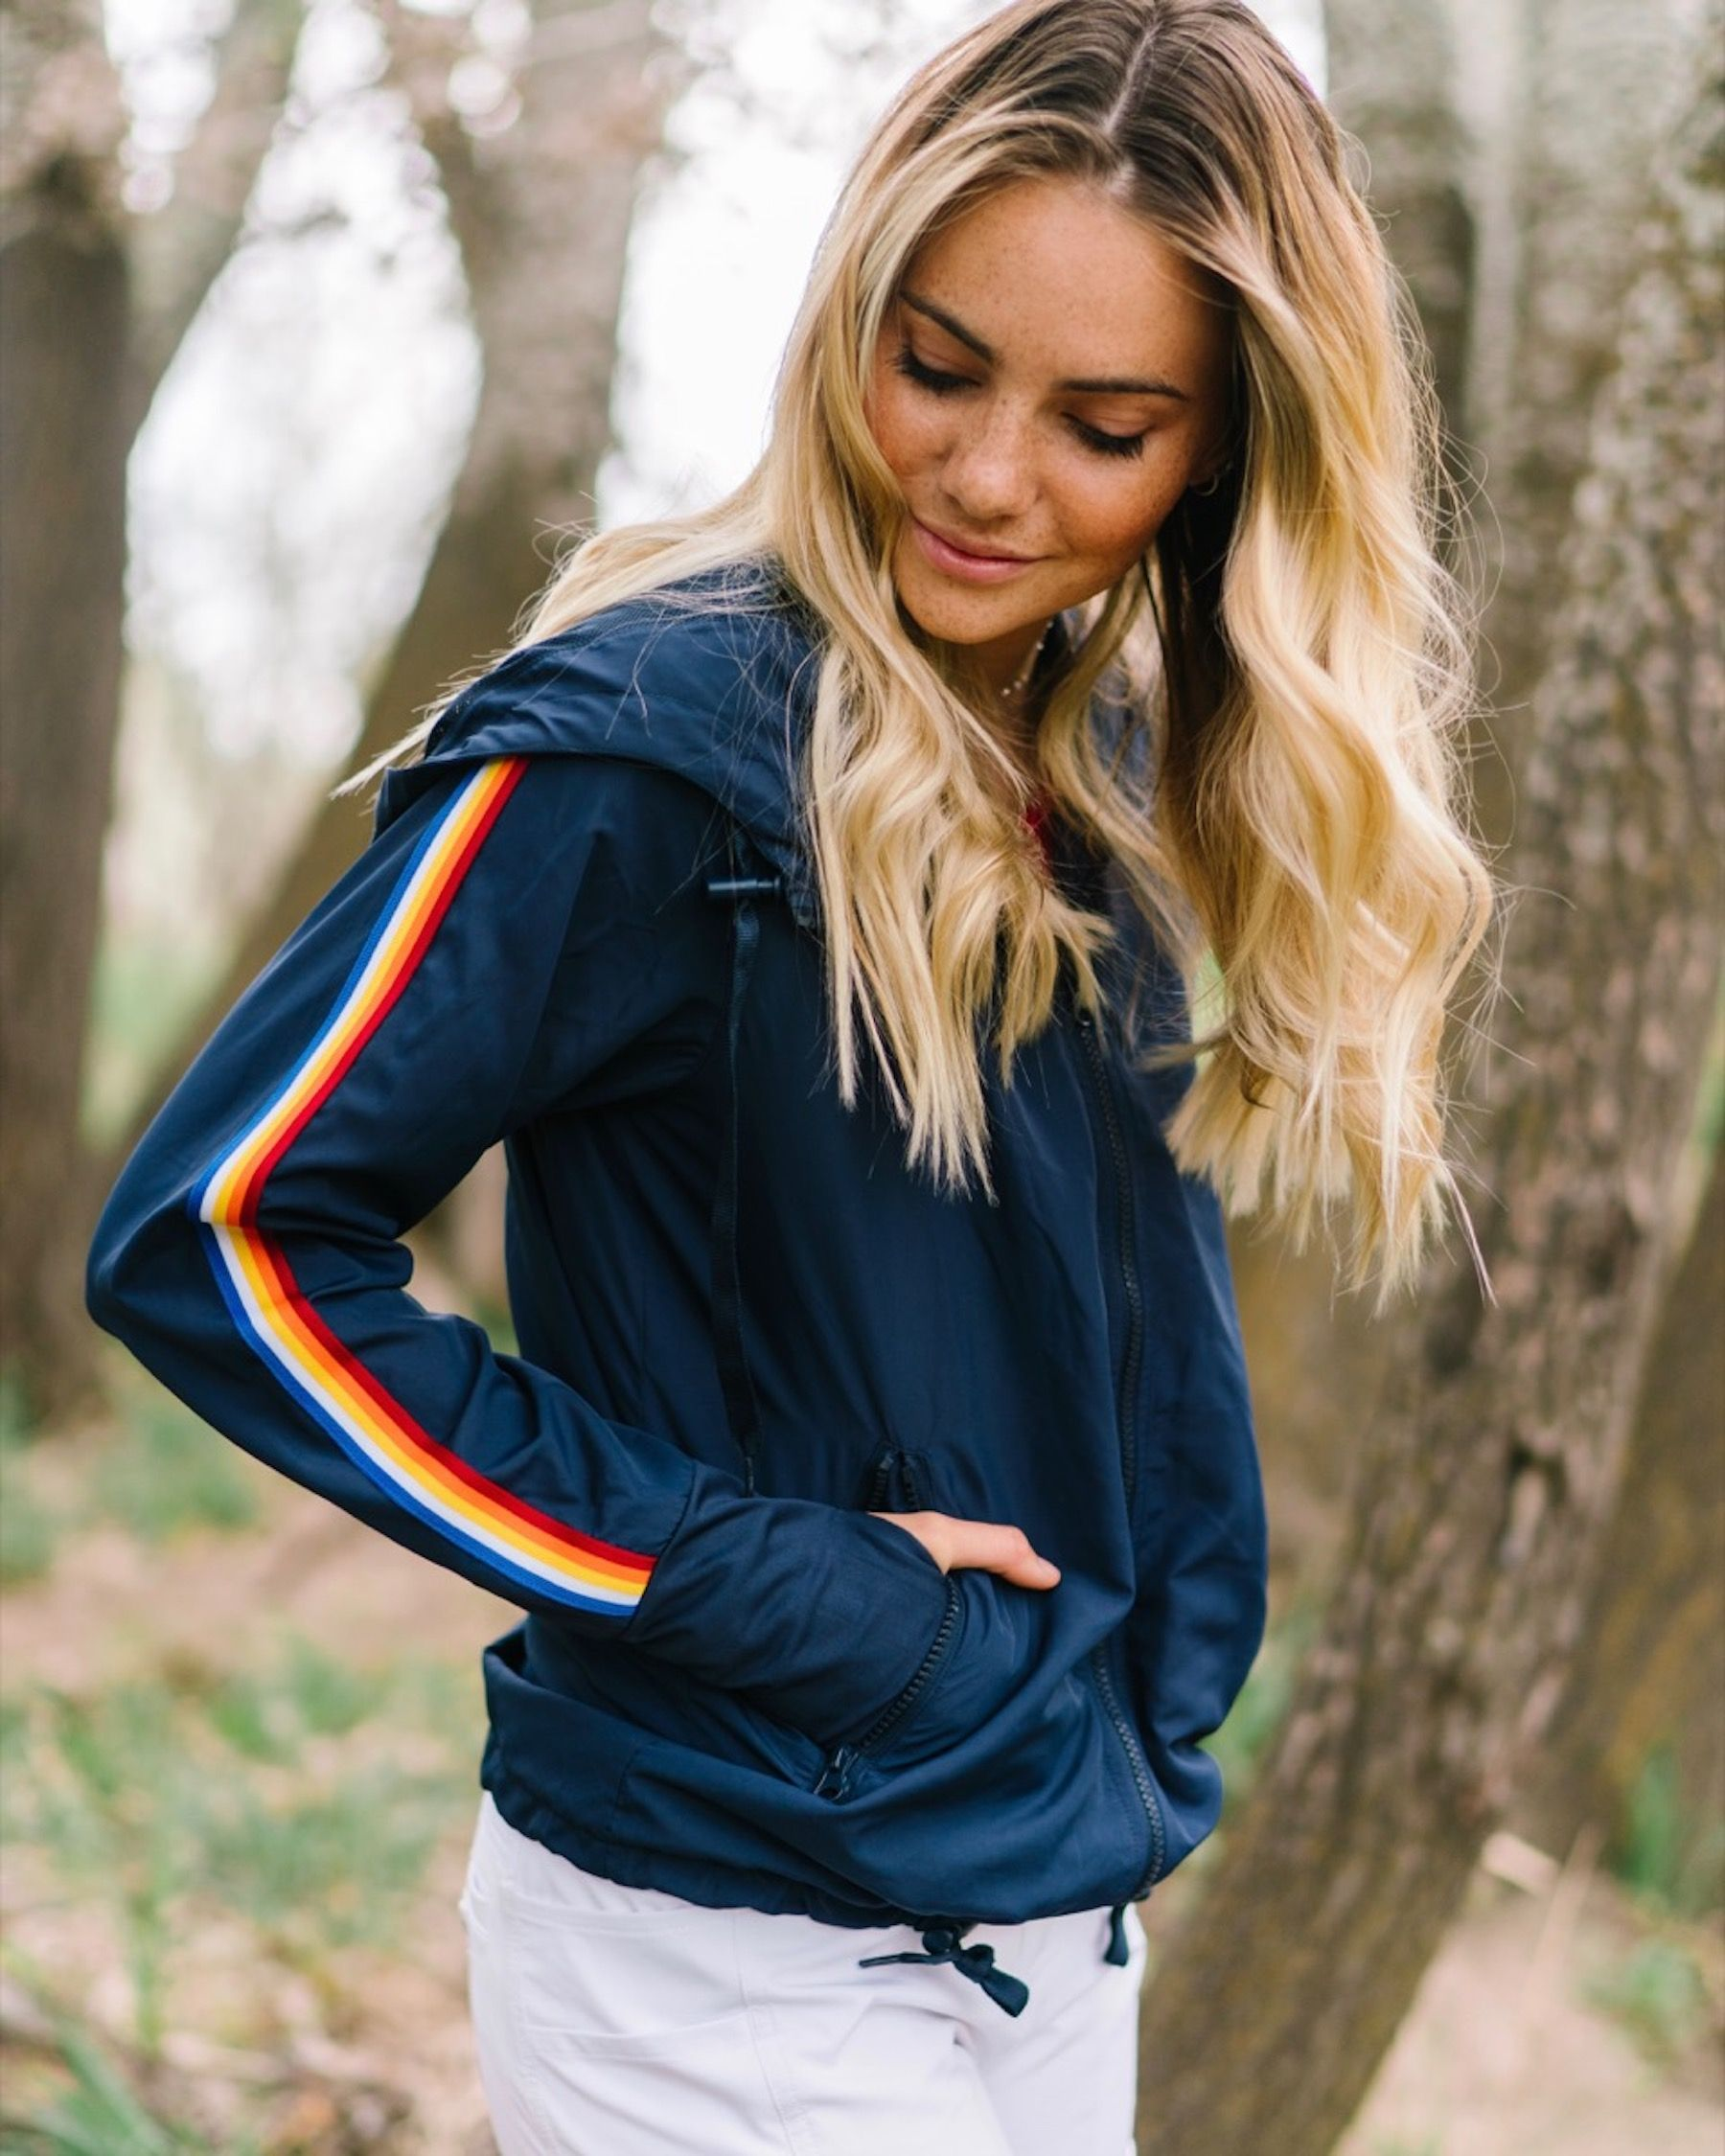 Zyia Active Athleisure Clothing Independent Rep Bomber Jacket White Bomber Jacket Athleisure Outfits [ 2250 x 1800 Pixel ]